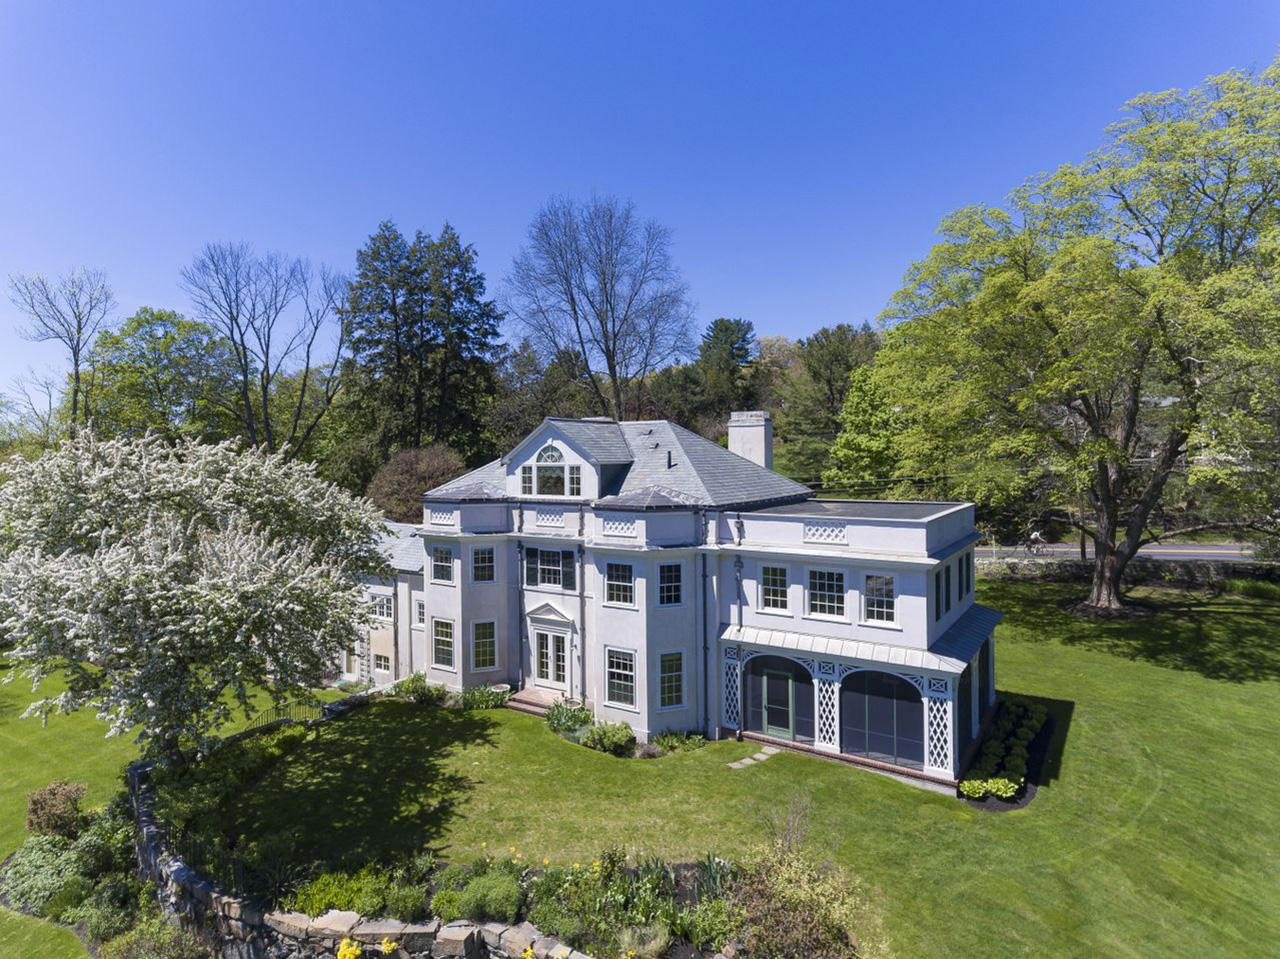 homes near private schools - MA2245